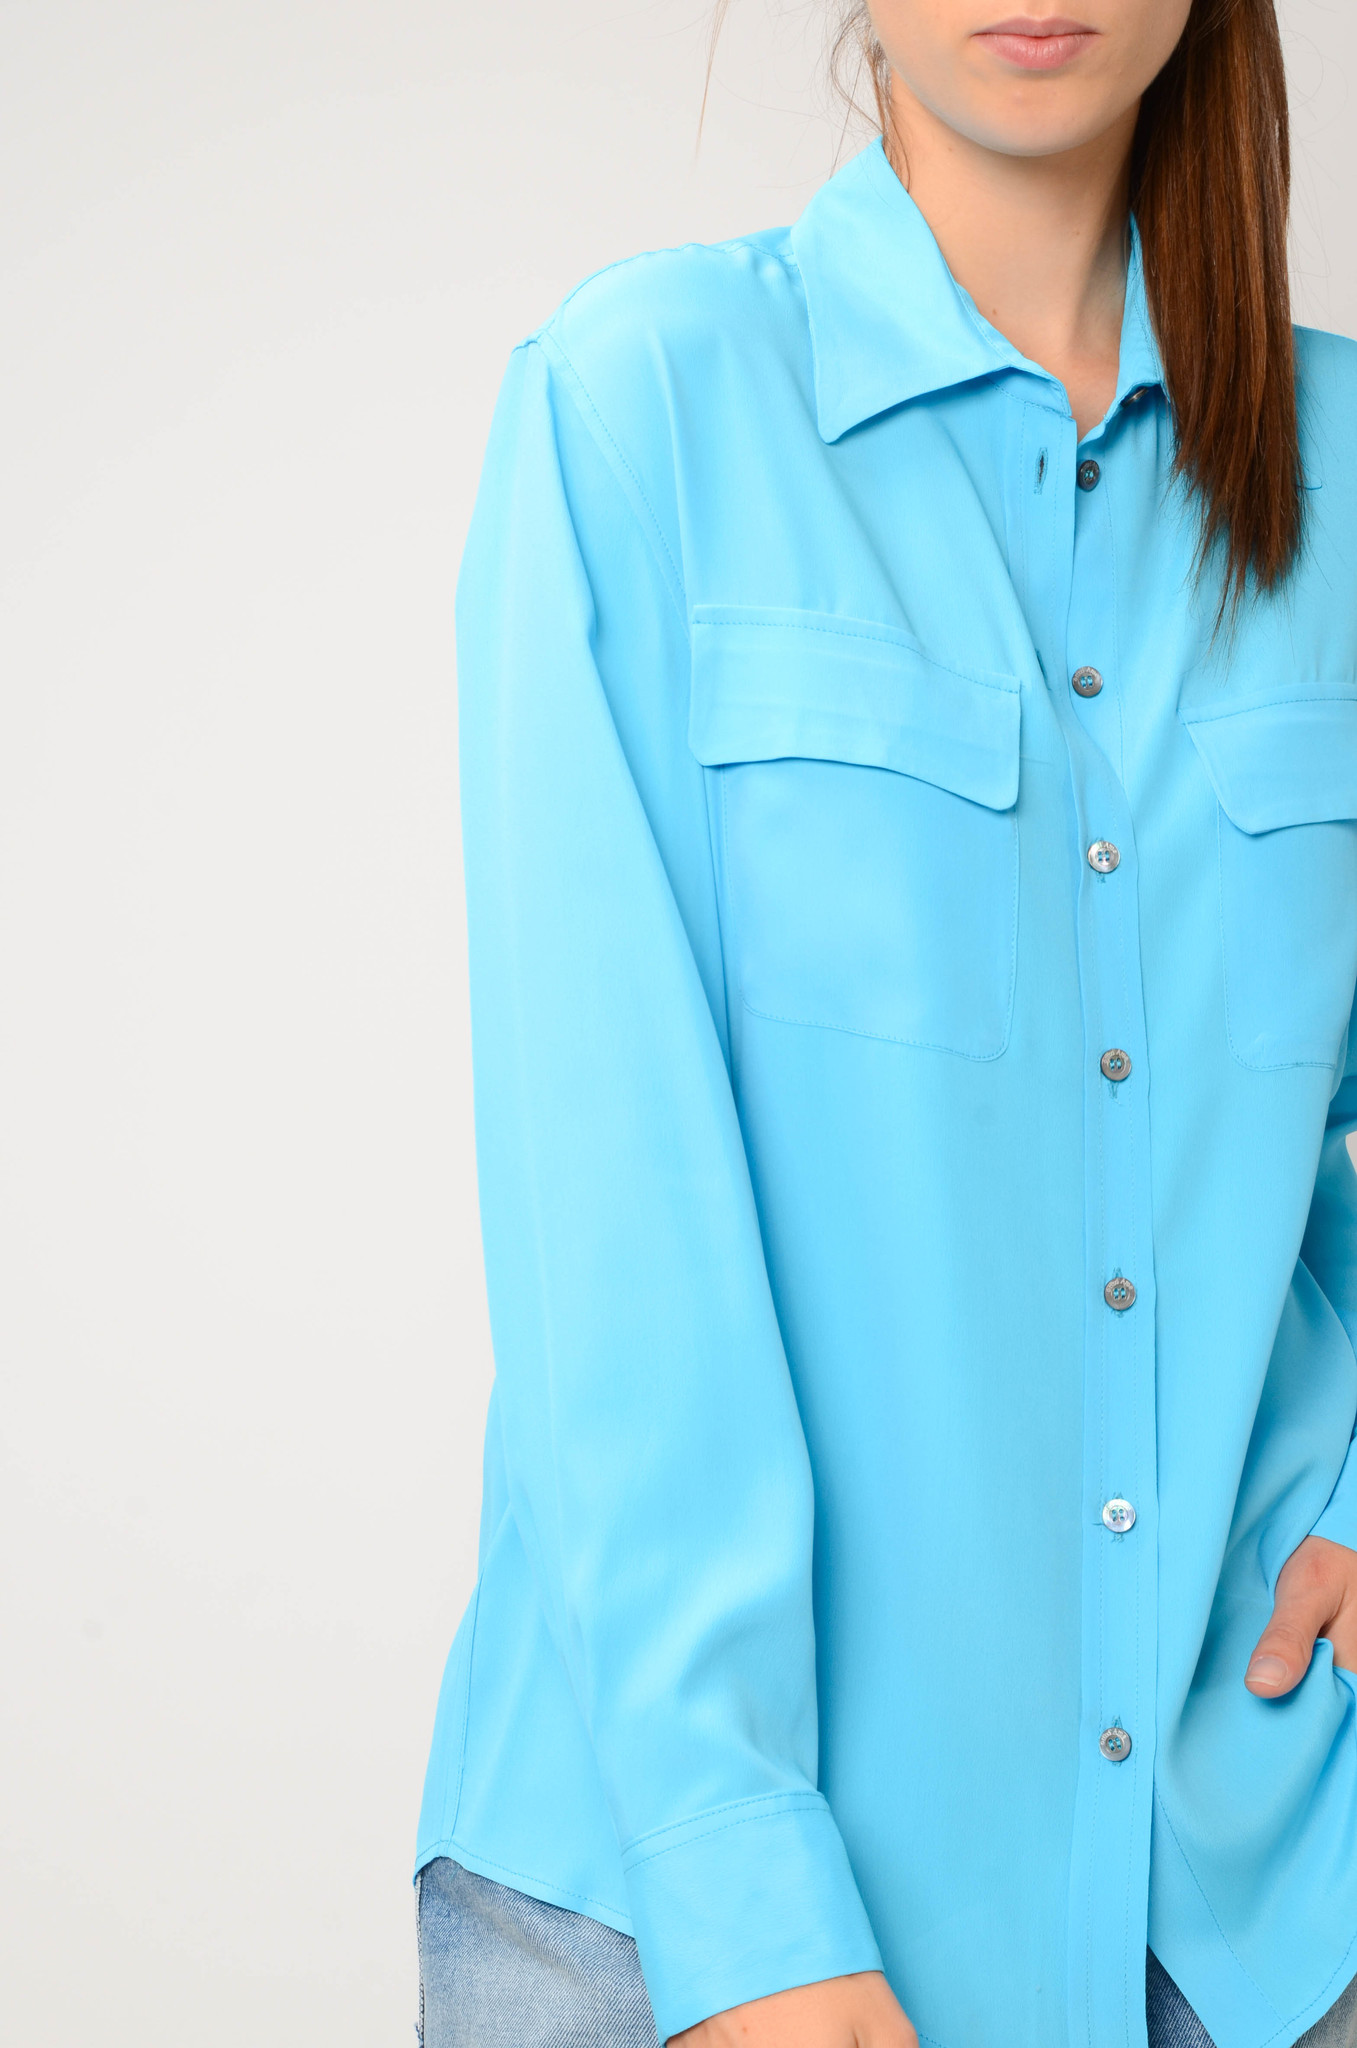 SILK BLEND BLOUSE IN TURQUOISE-5